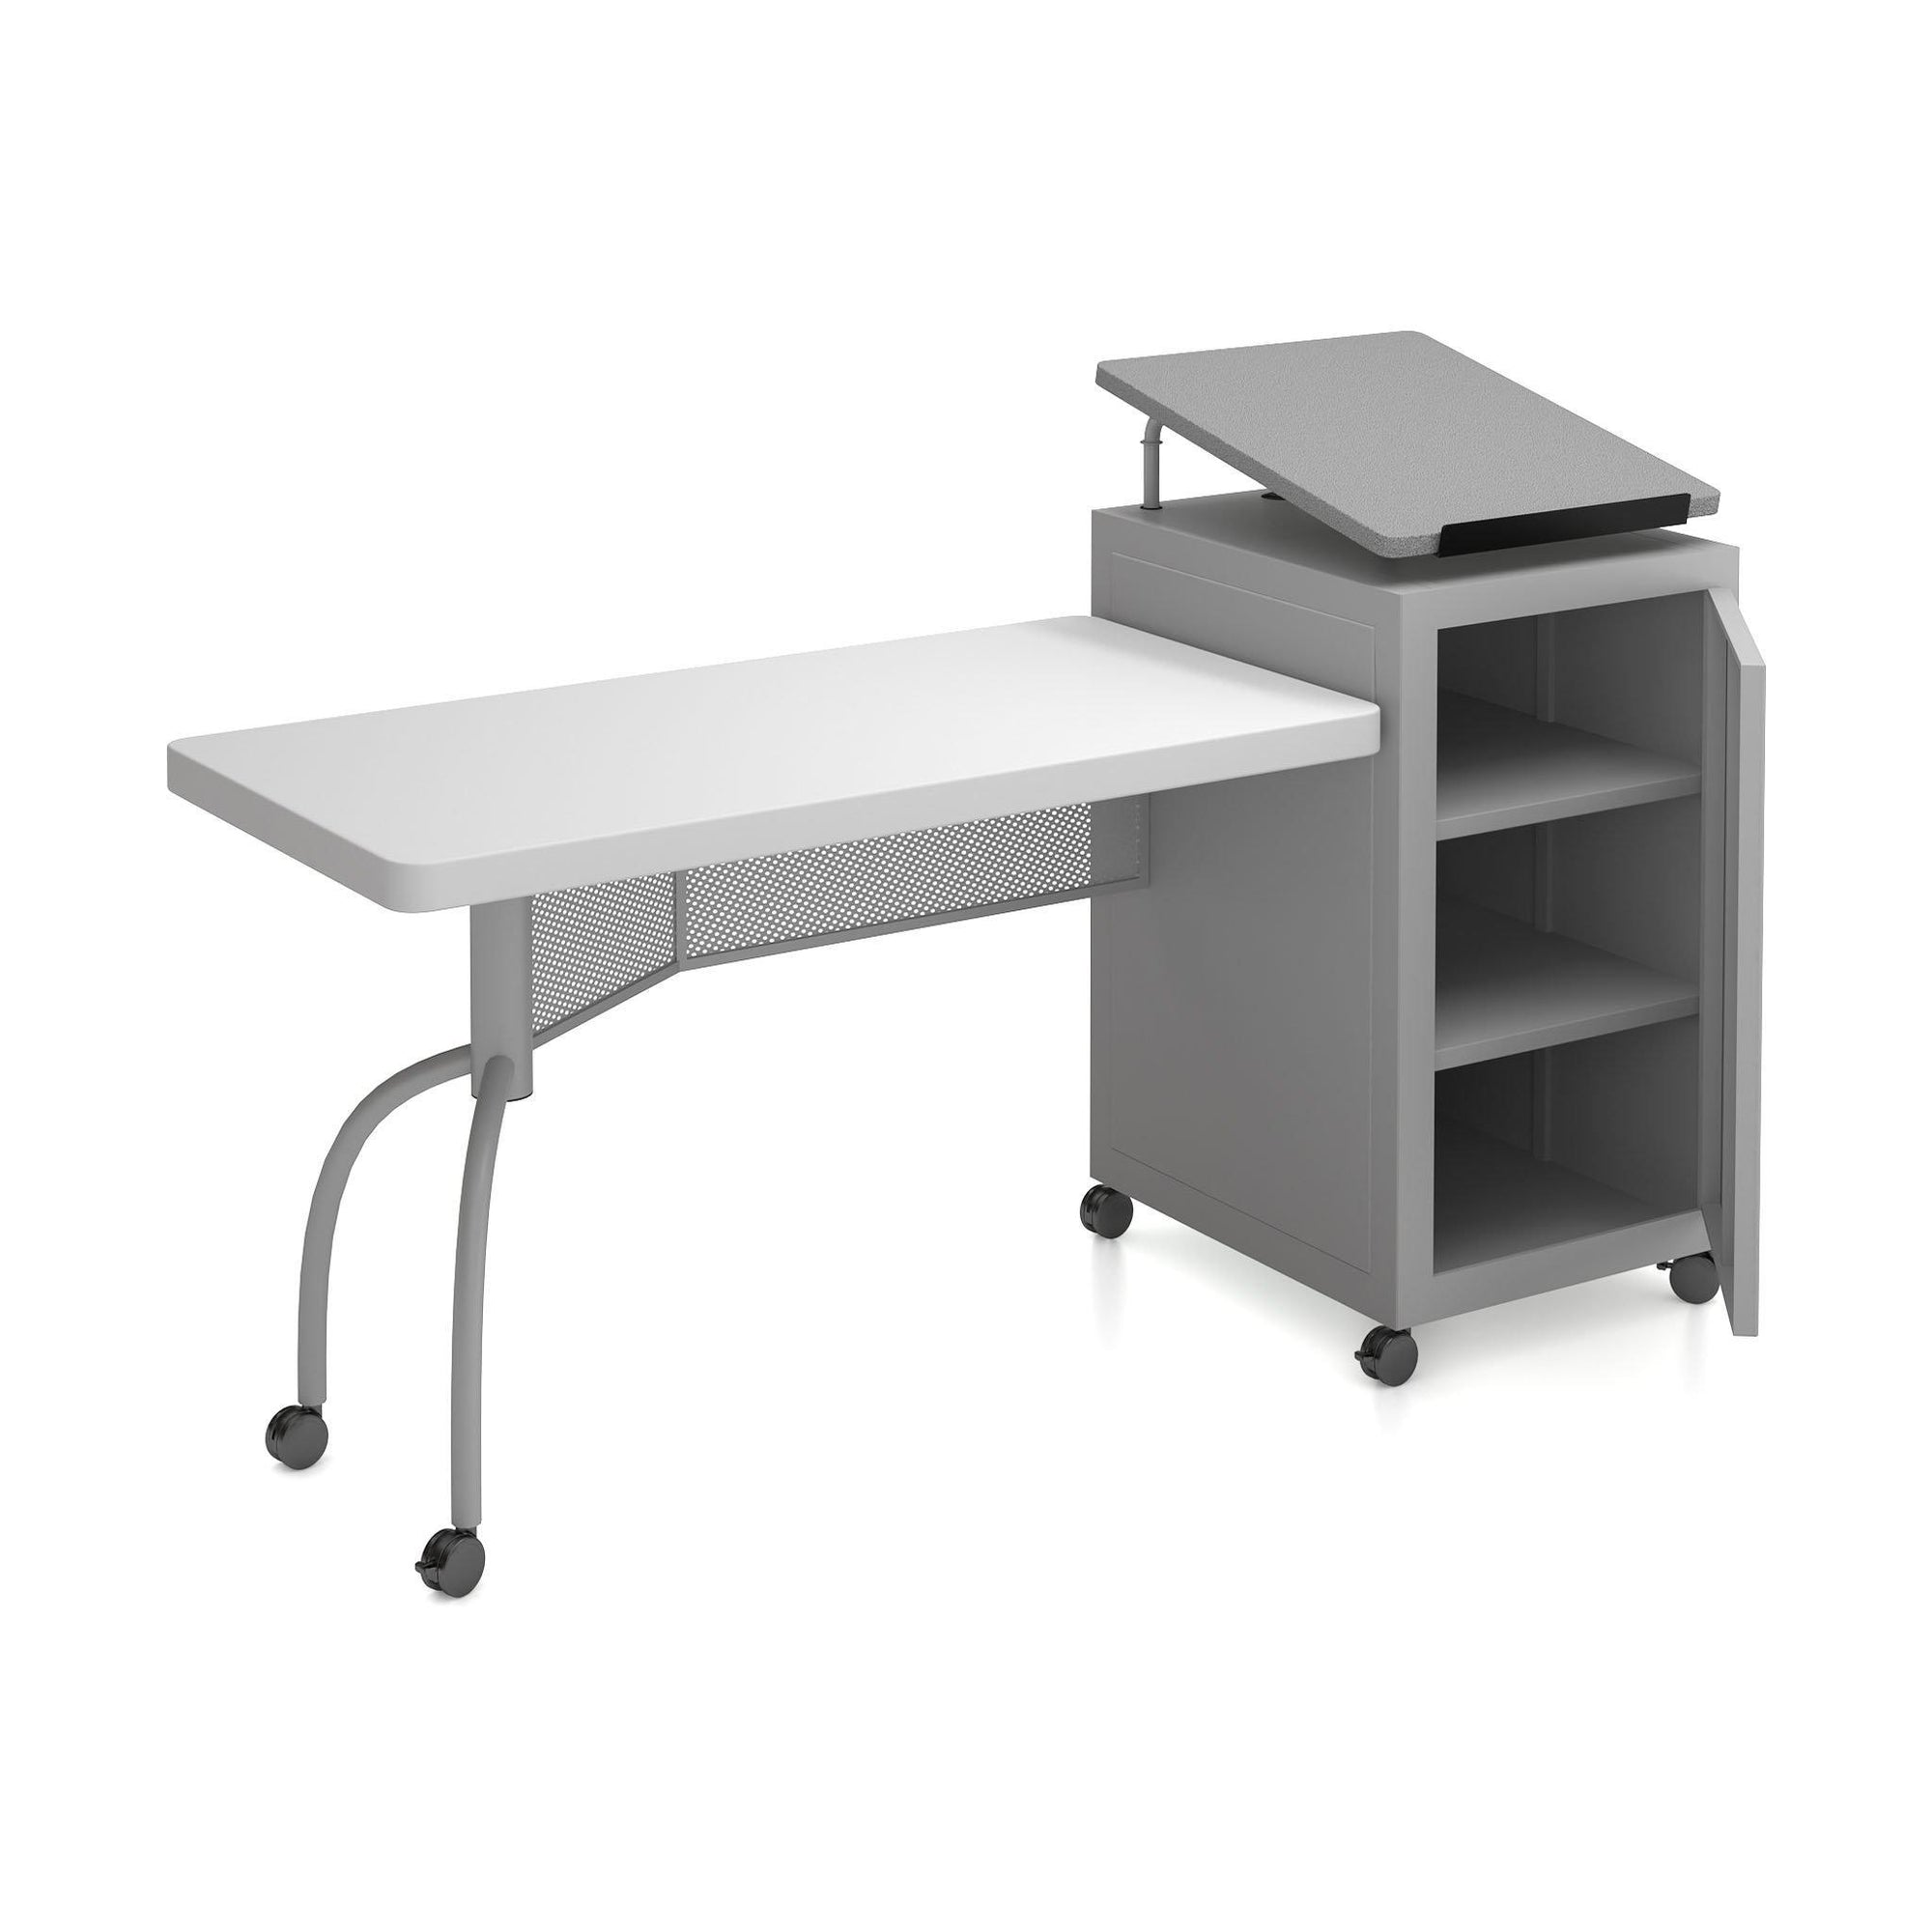 Oklahoma Sound® Edupod Teacher's Desk & Lectern Combo, Grey Hammer Tone-Lecterns & Podiums-